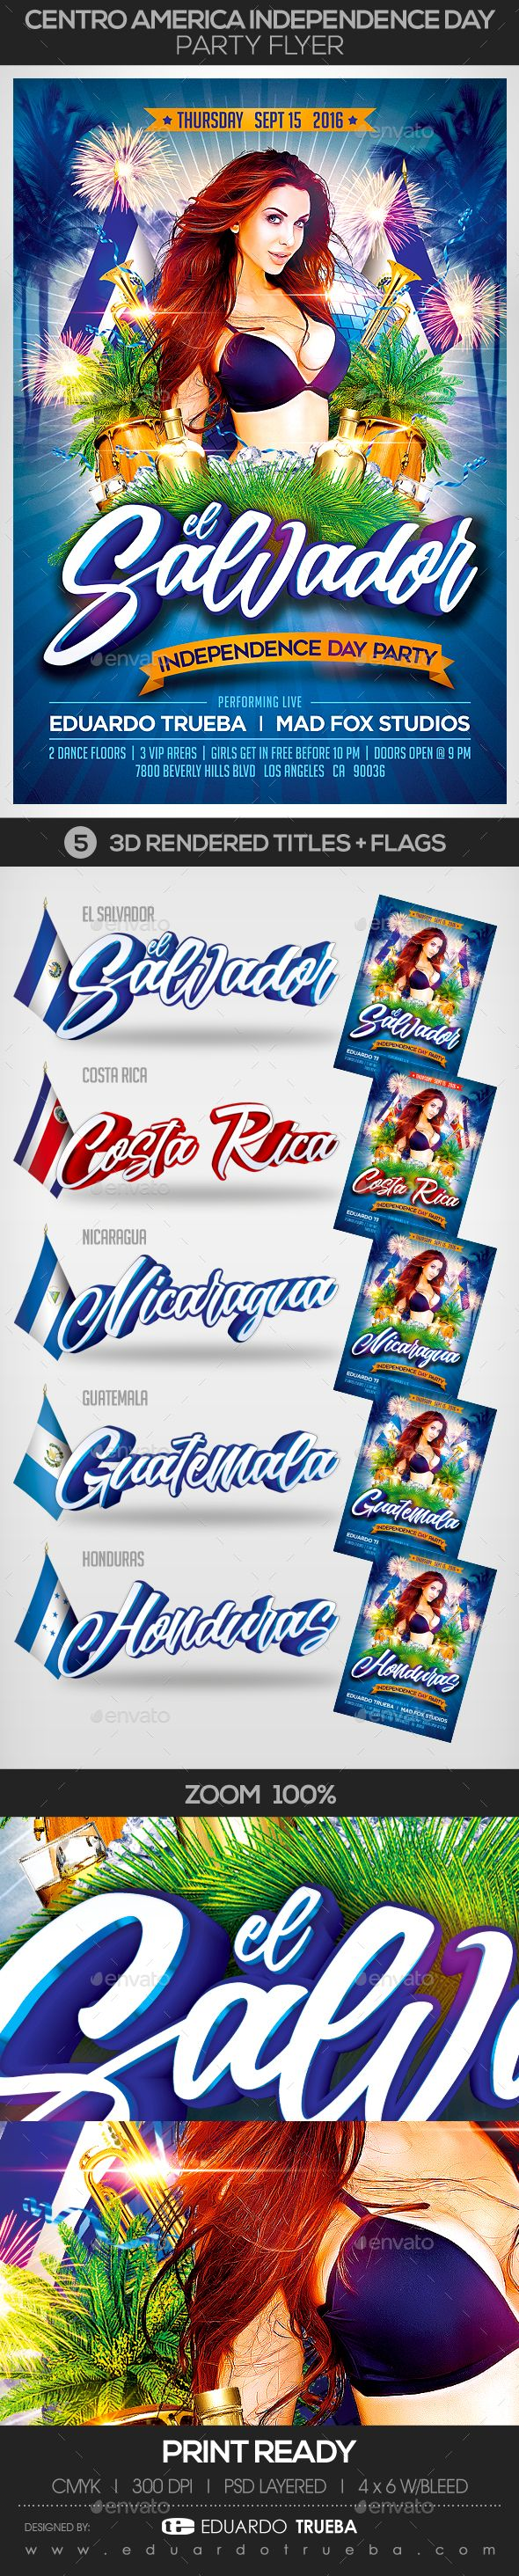 Centro America Independence Day Party Flyer — Photoshop PSD #nicaraguense #hondureno • Available here → https://graphicriver.net/item/centro-america-independence-day-party-flyer/17756489?ref=pxcr